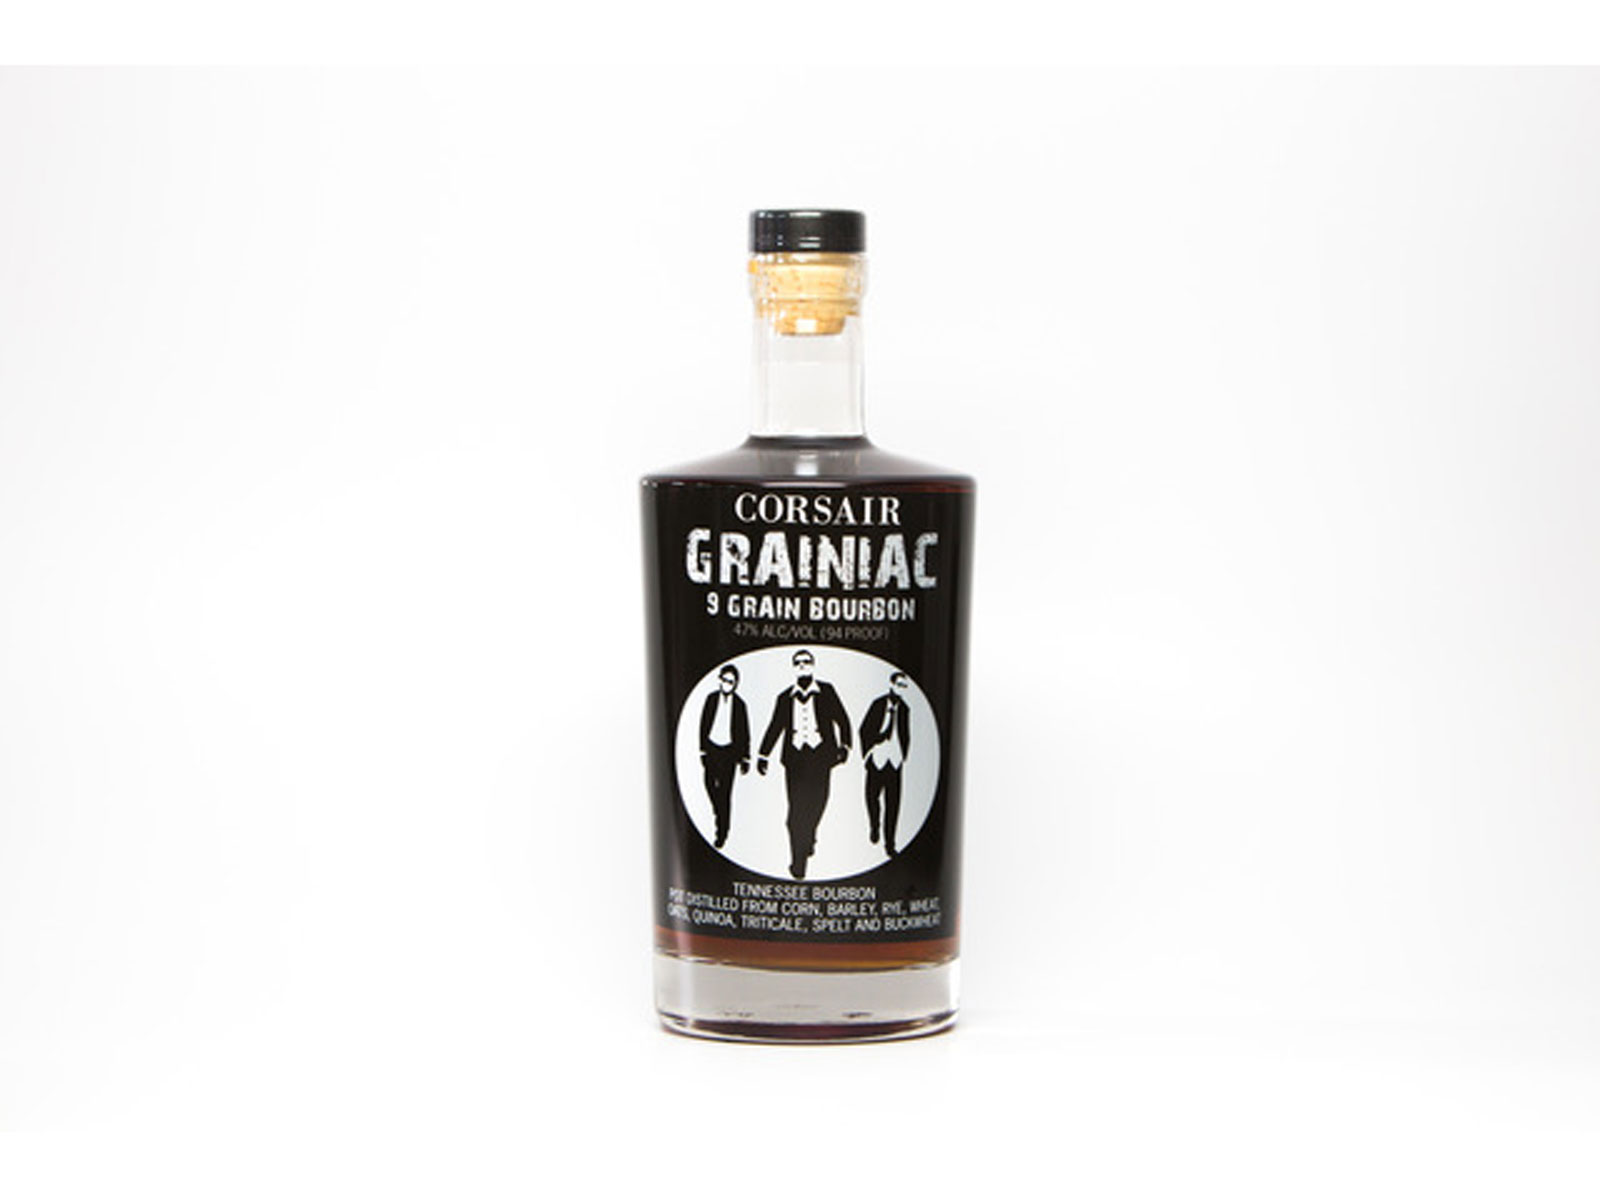 Grainiac 9 Grain Bourbon by Corsair Distillery